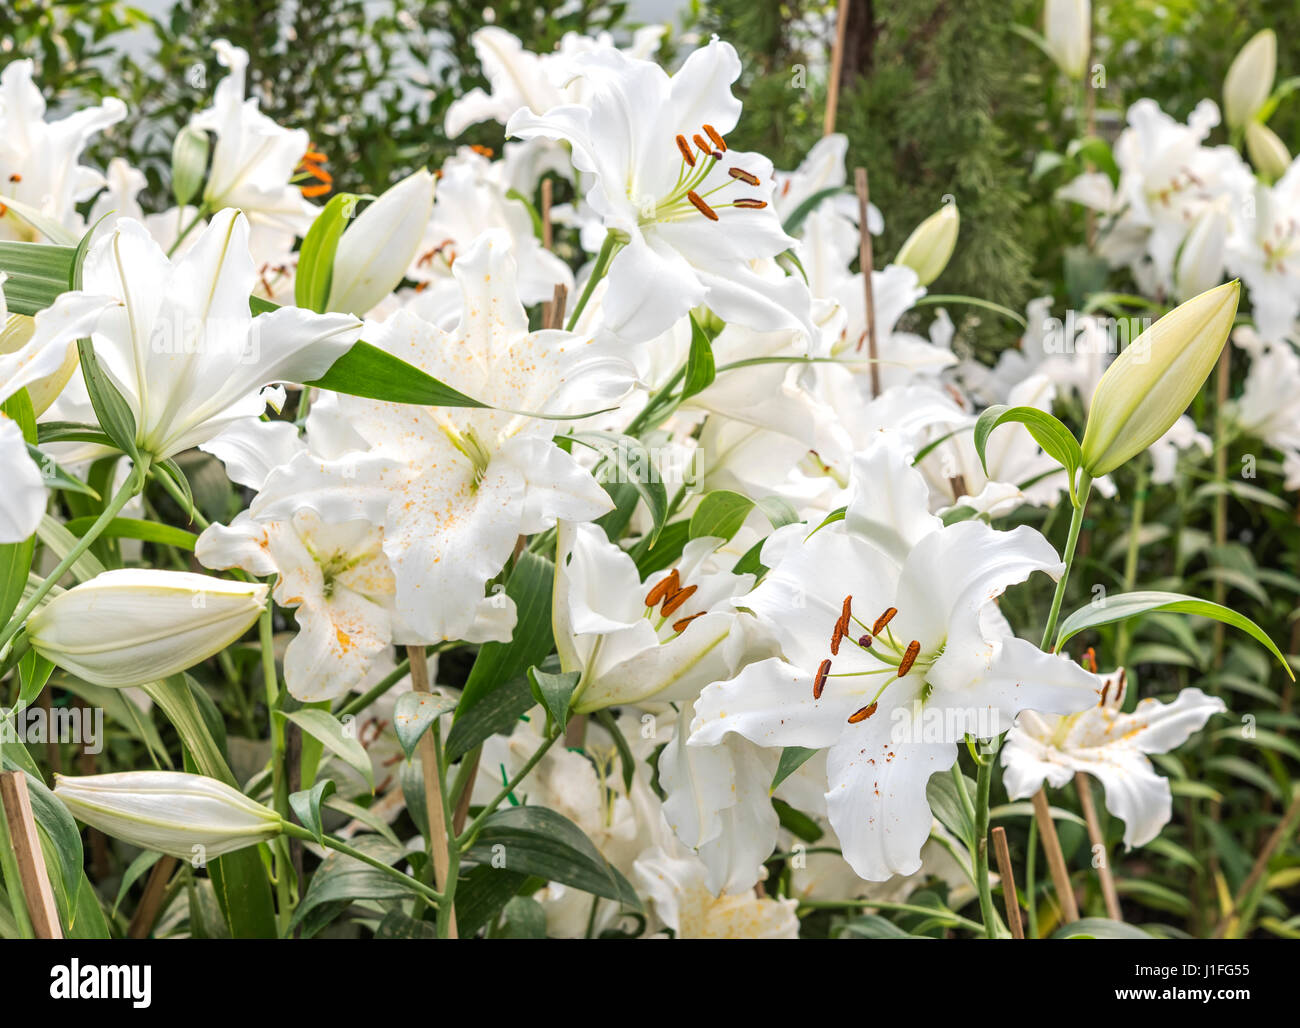 Beautiful white lily in garden field lilium flower section stock beautiful white lily in garden field lilium flower section archelirion izmirmasajfo